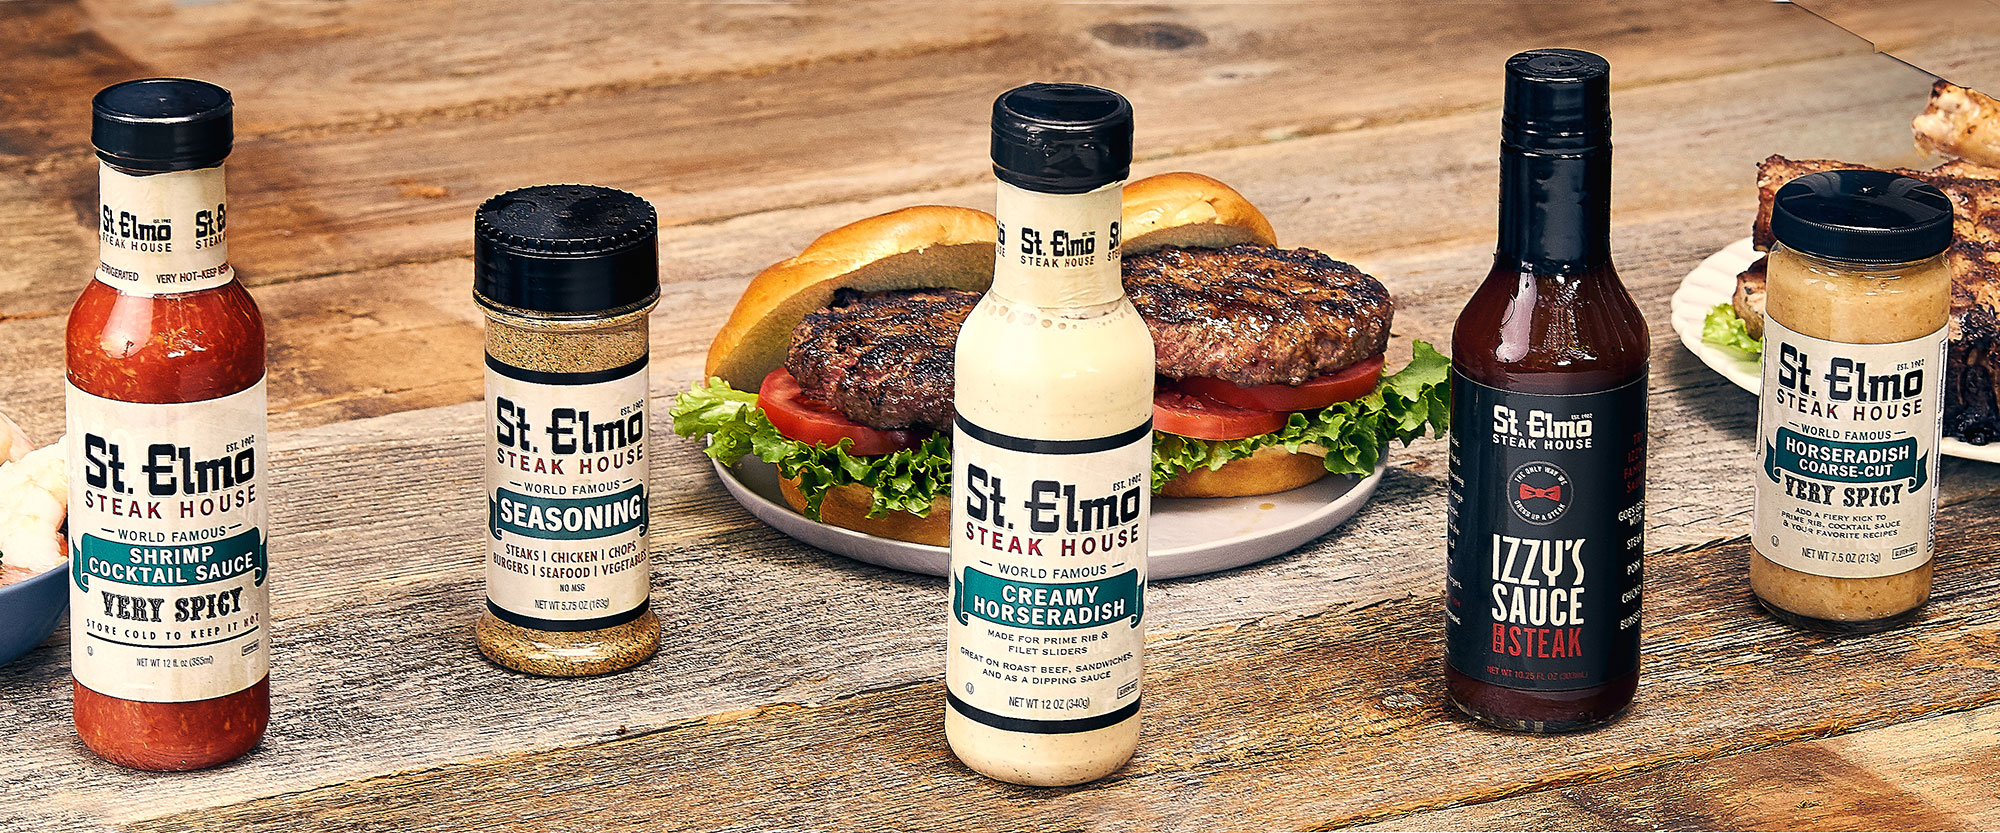 St. Elmo Steak House Retail Gift Box